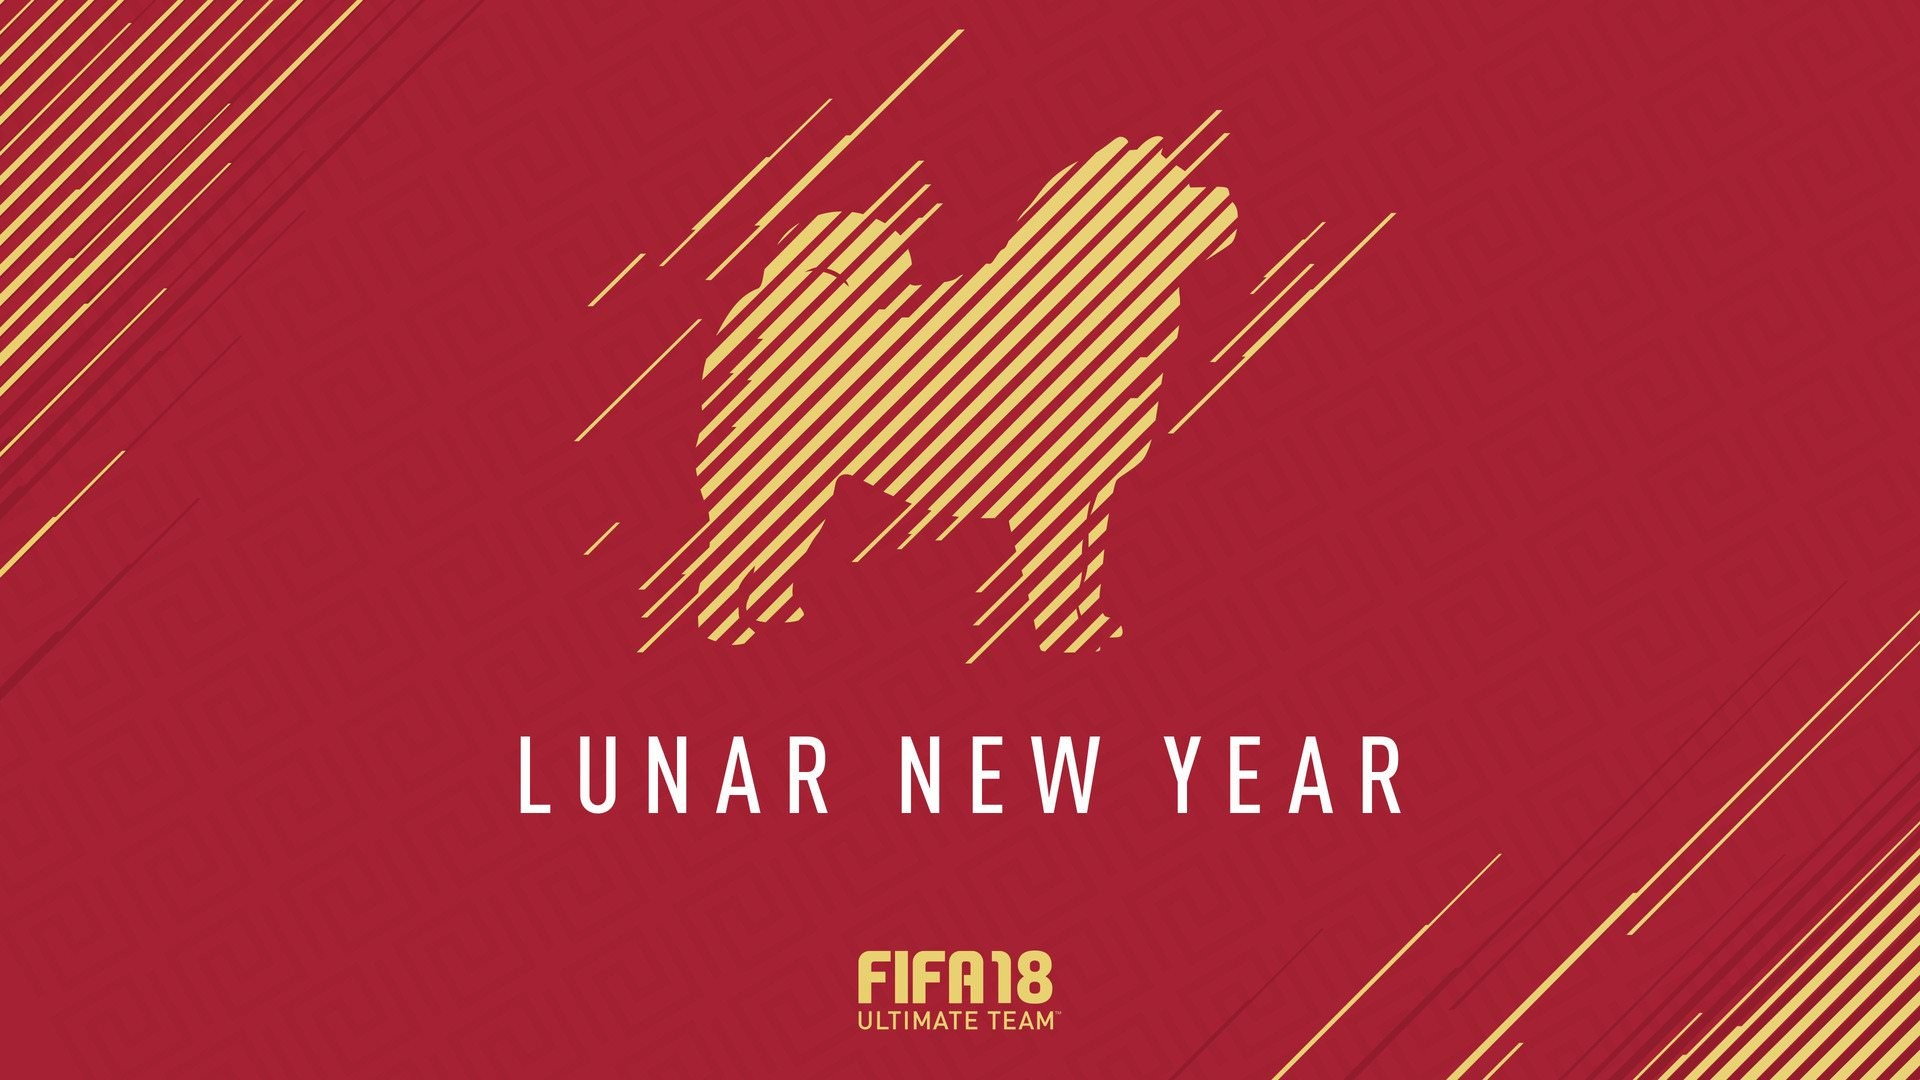 1920x1080 EA Sports is celebrating Lunar New Year, the Year of the Dog in FIFA 18  Ultimate Team from 16th to 19th February 2018.